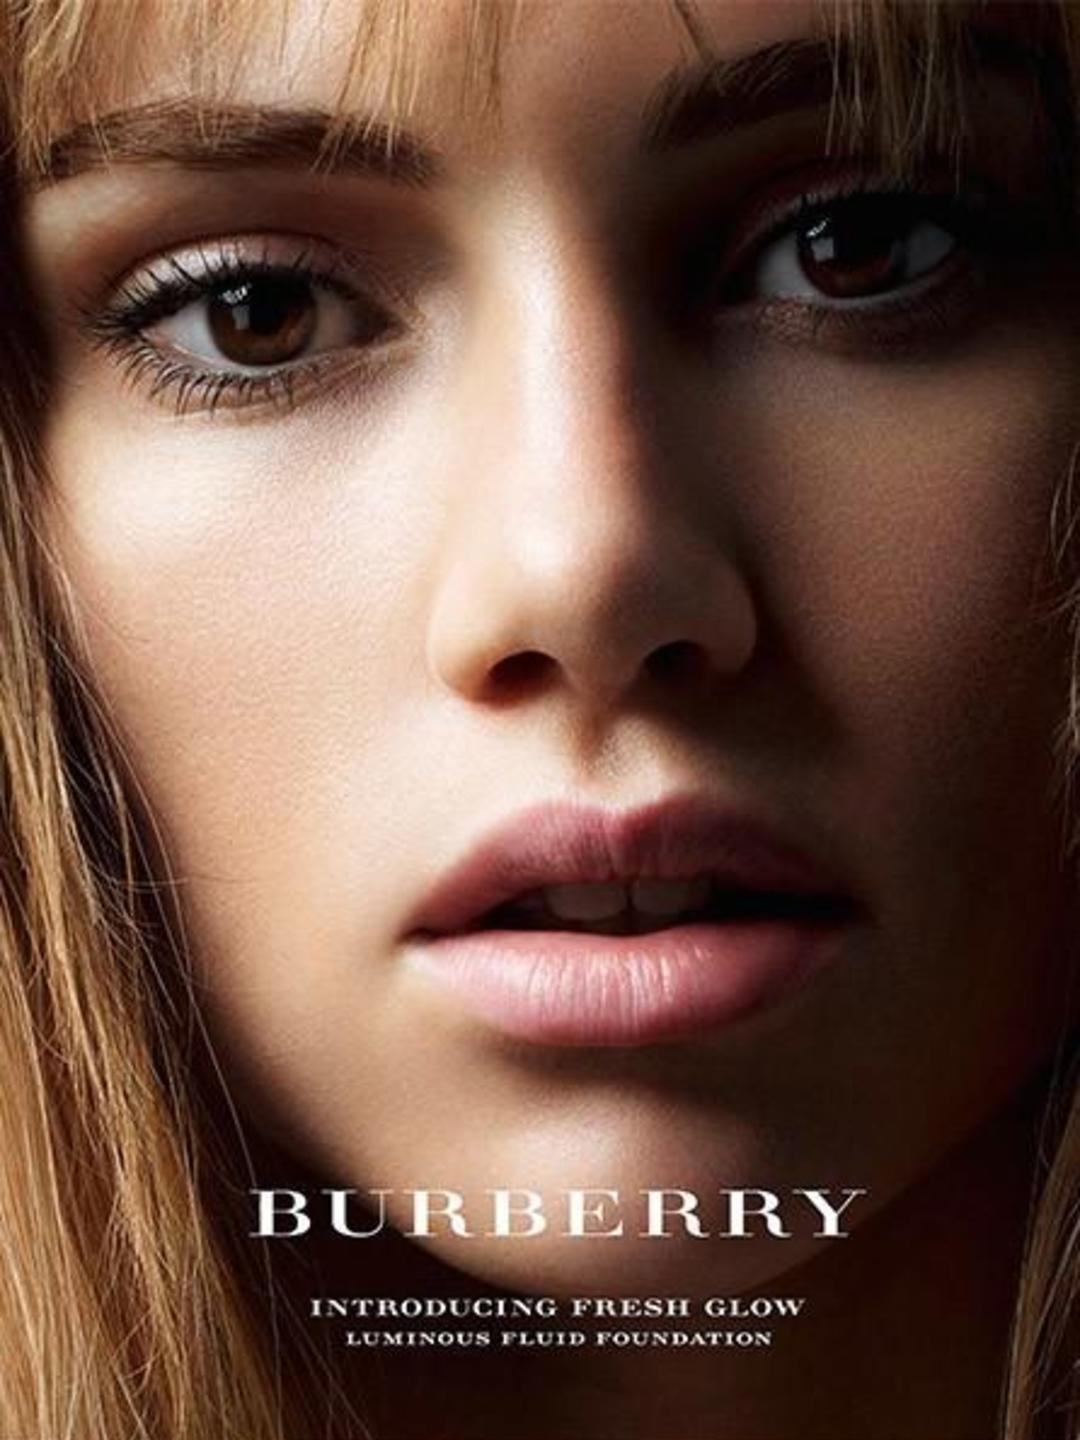 Suki Waterhouse fronts Burberry beauty campaign